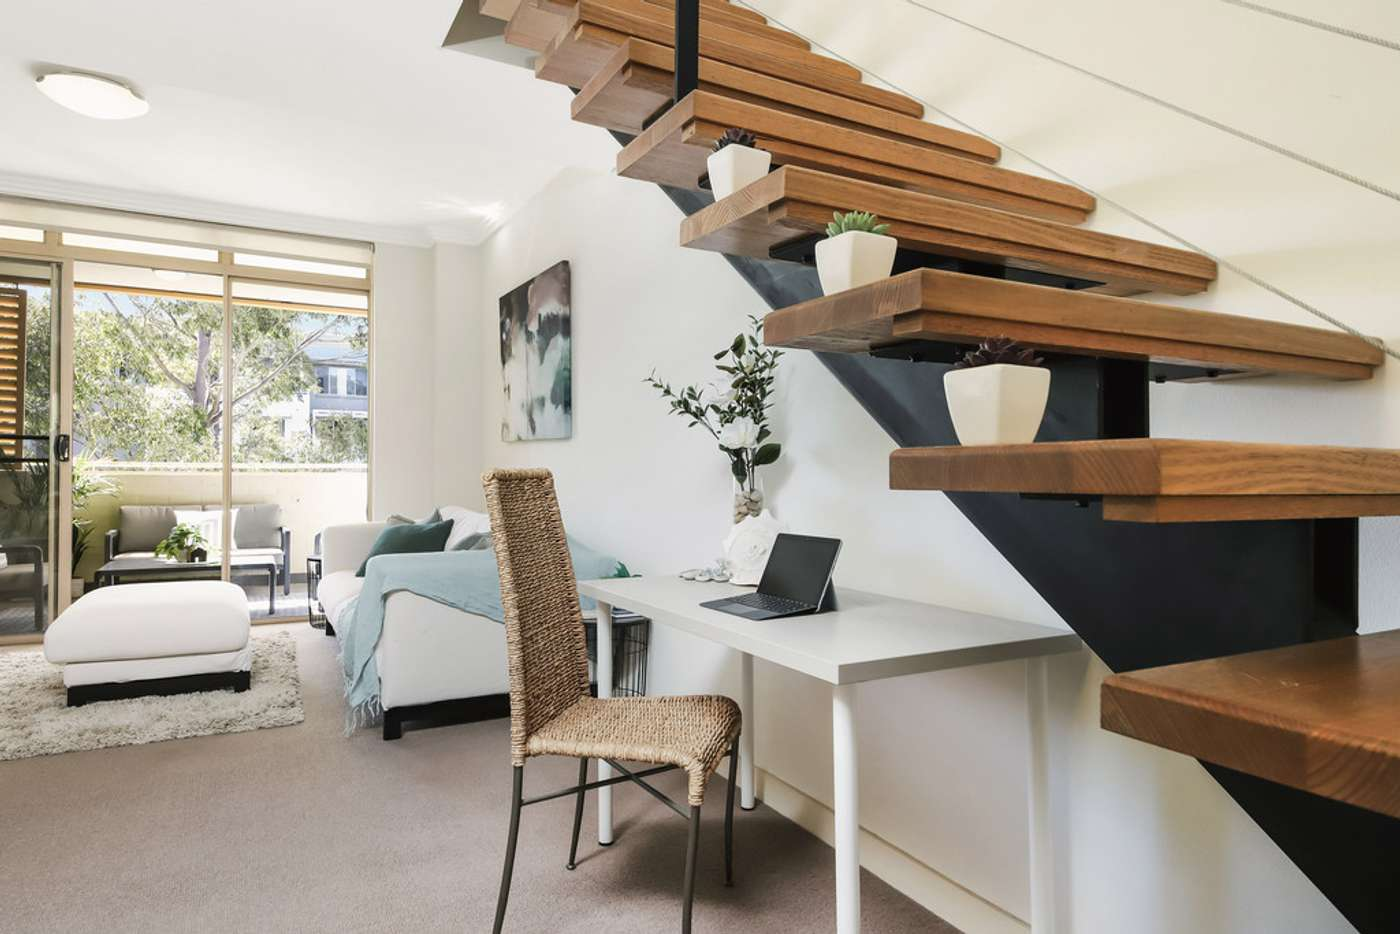 Main view of Homely apartment listing, 307/4 Stromboli Strait, Wentworth Point NSW 2127